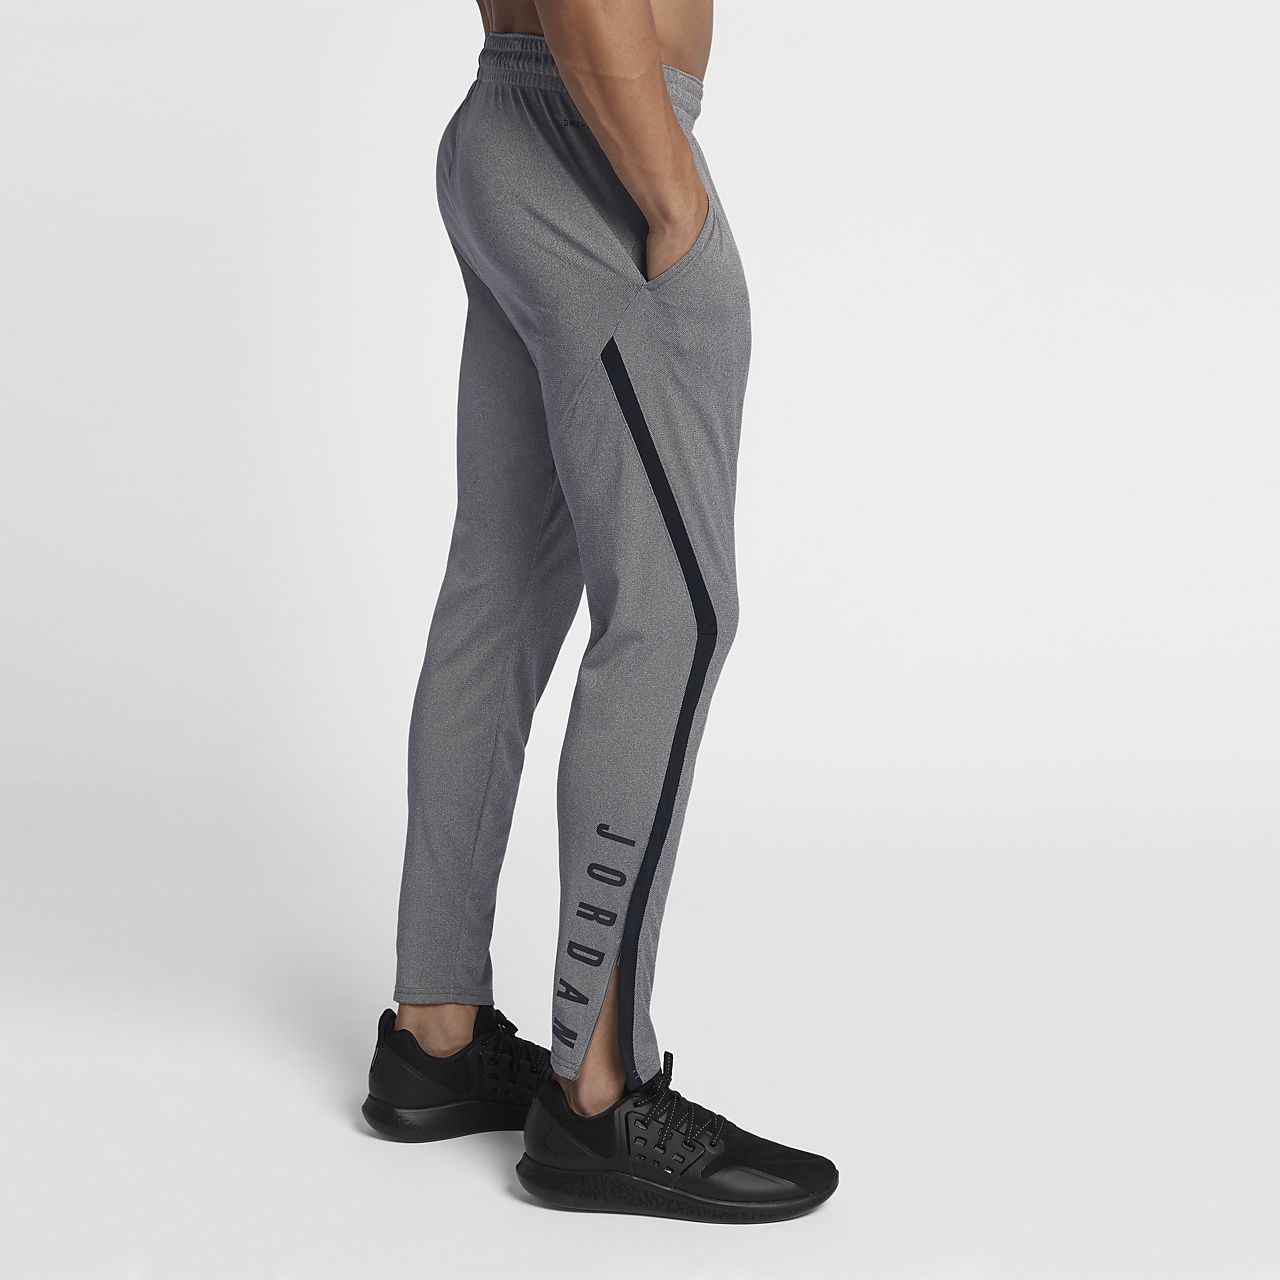 35f43f734d5a14 Jordan Dri-FIT 23 Alpha Men s Basketball Pants. Nike.com